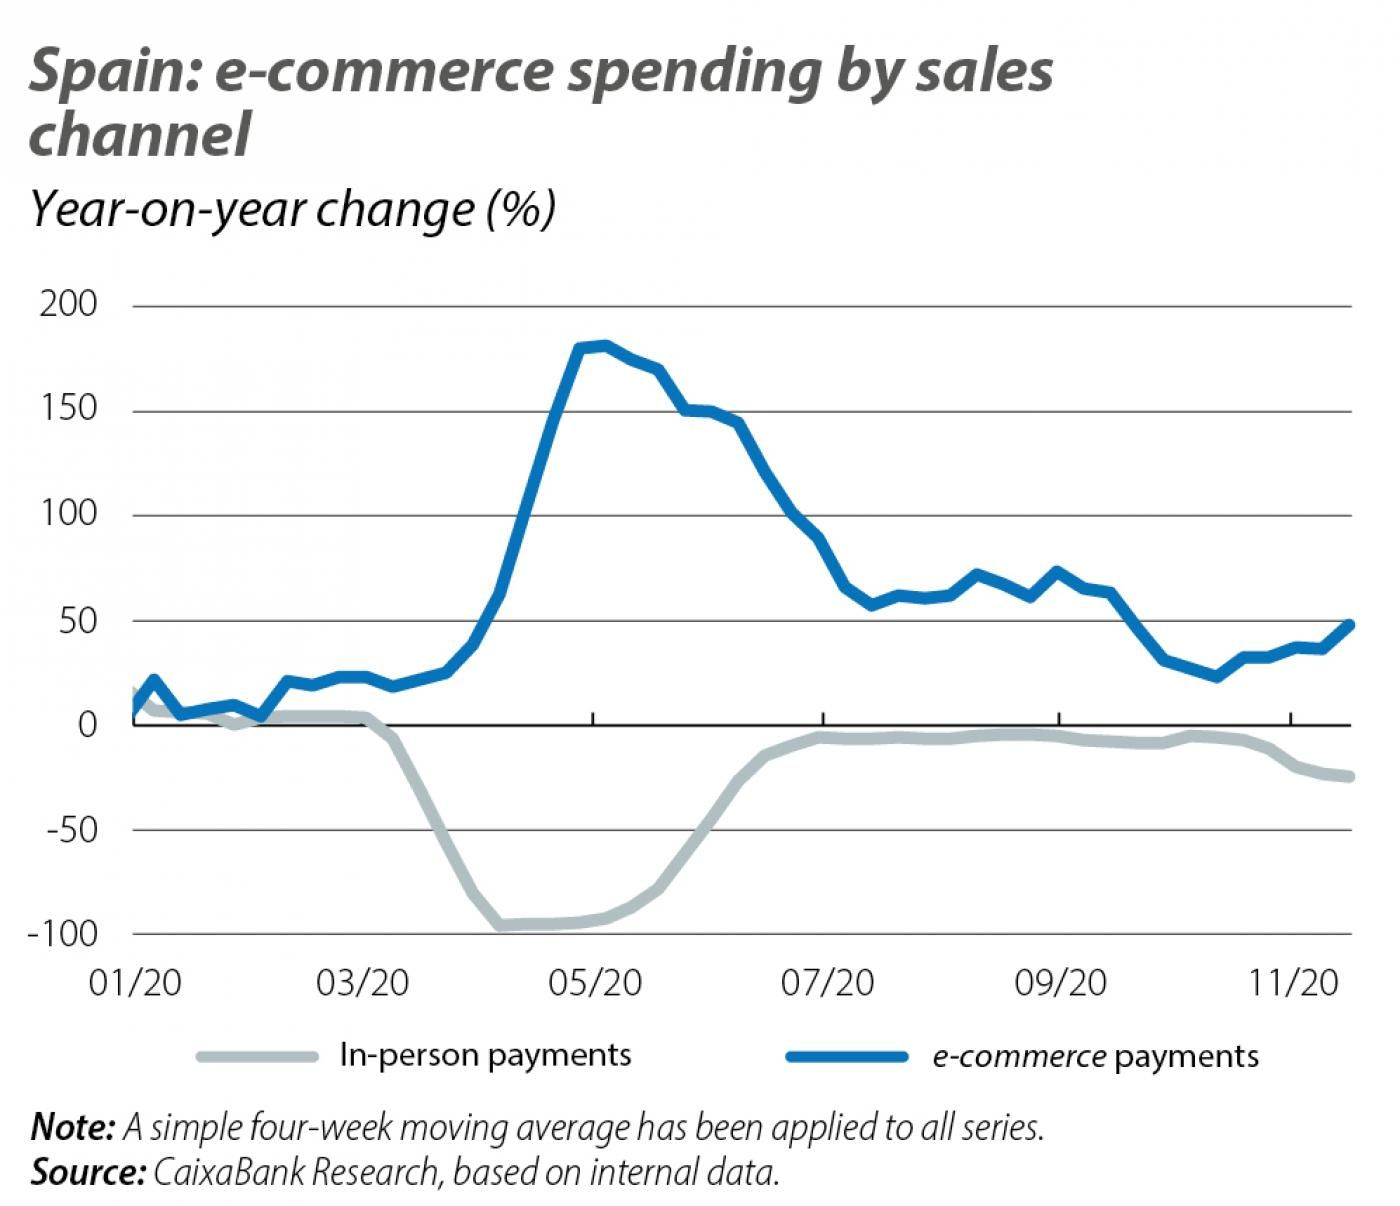 Spain: e-commerce spending by sales channel